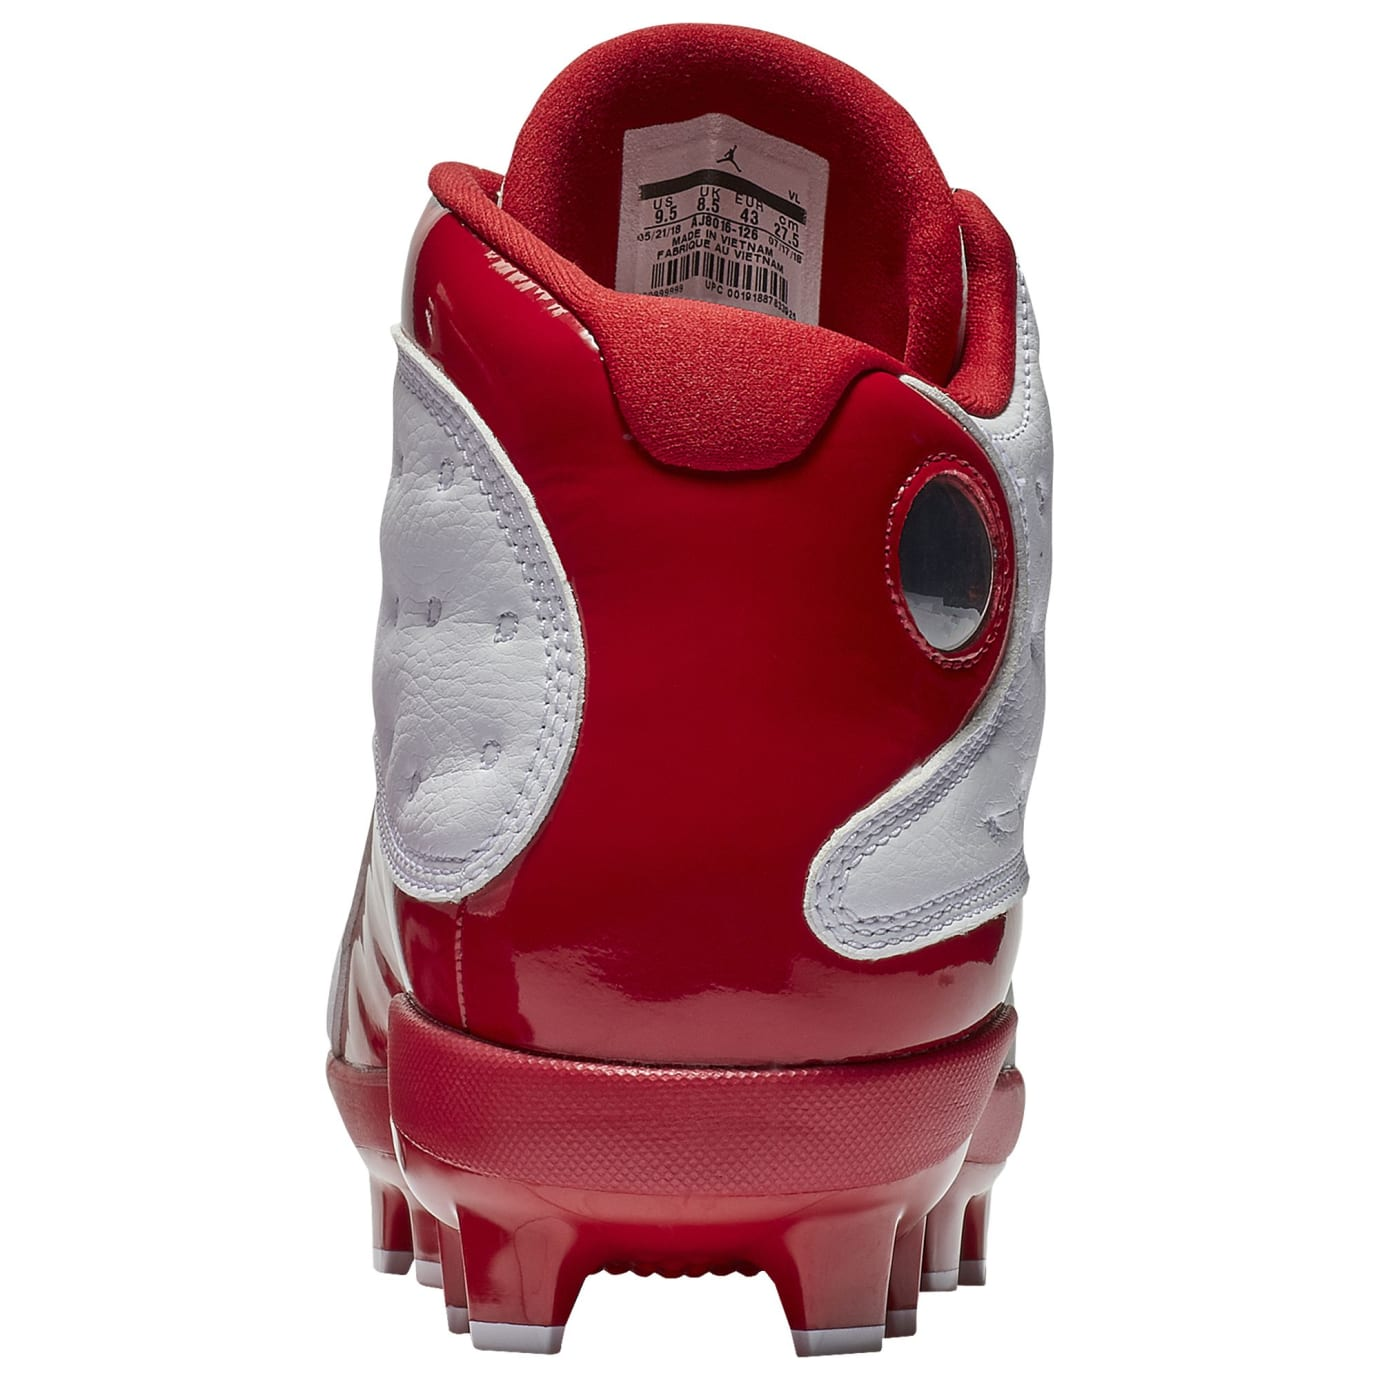 dd226fe6f5a7 Image via Champs Sports air-jordan-13-cleat-white-red-grey-heel